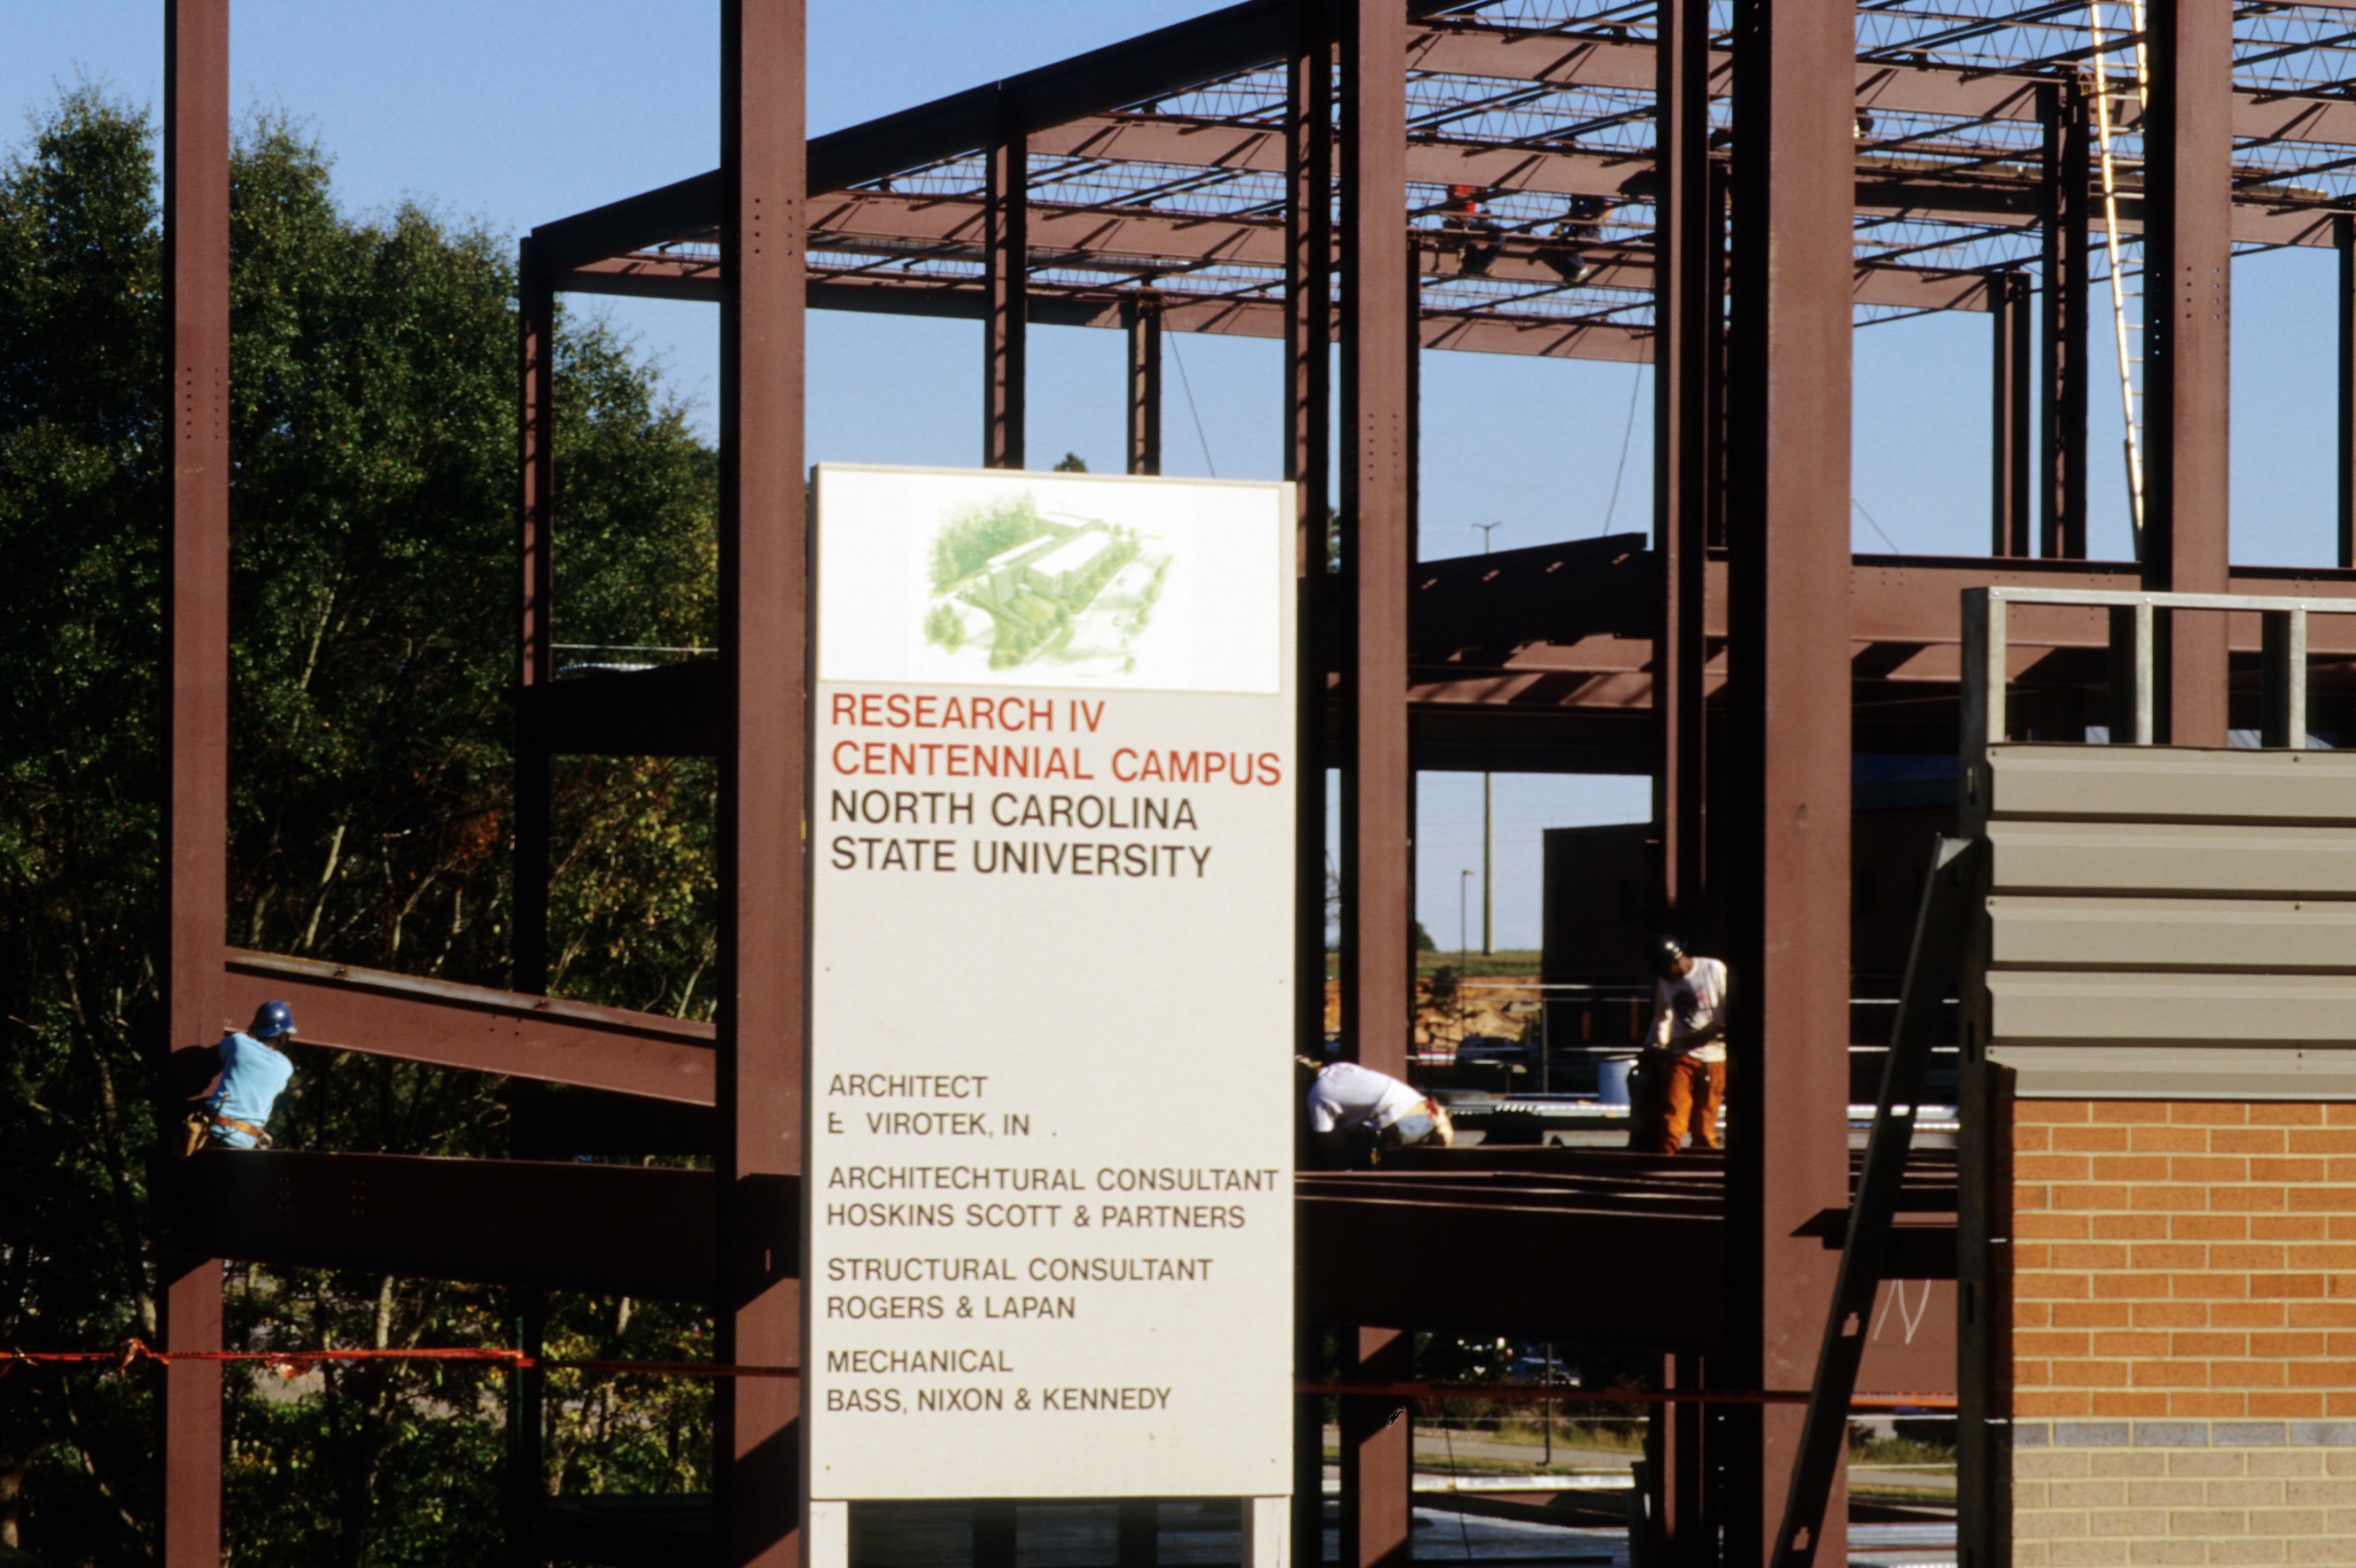 Research IV construction, Centennial Campus, North Carolina State